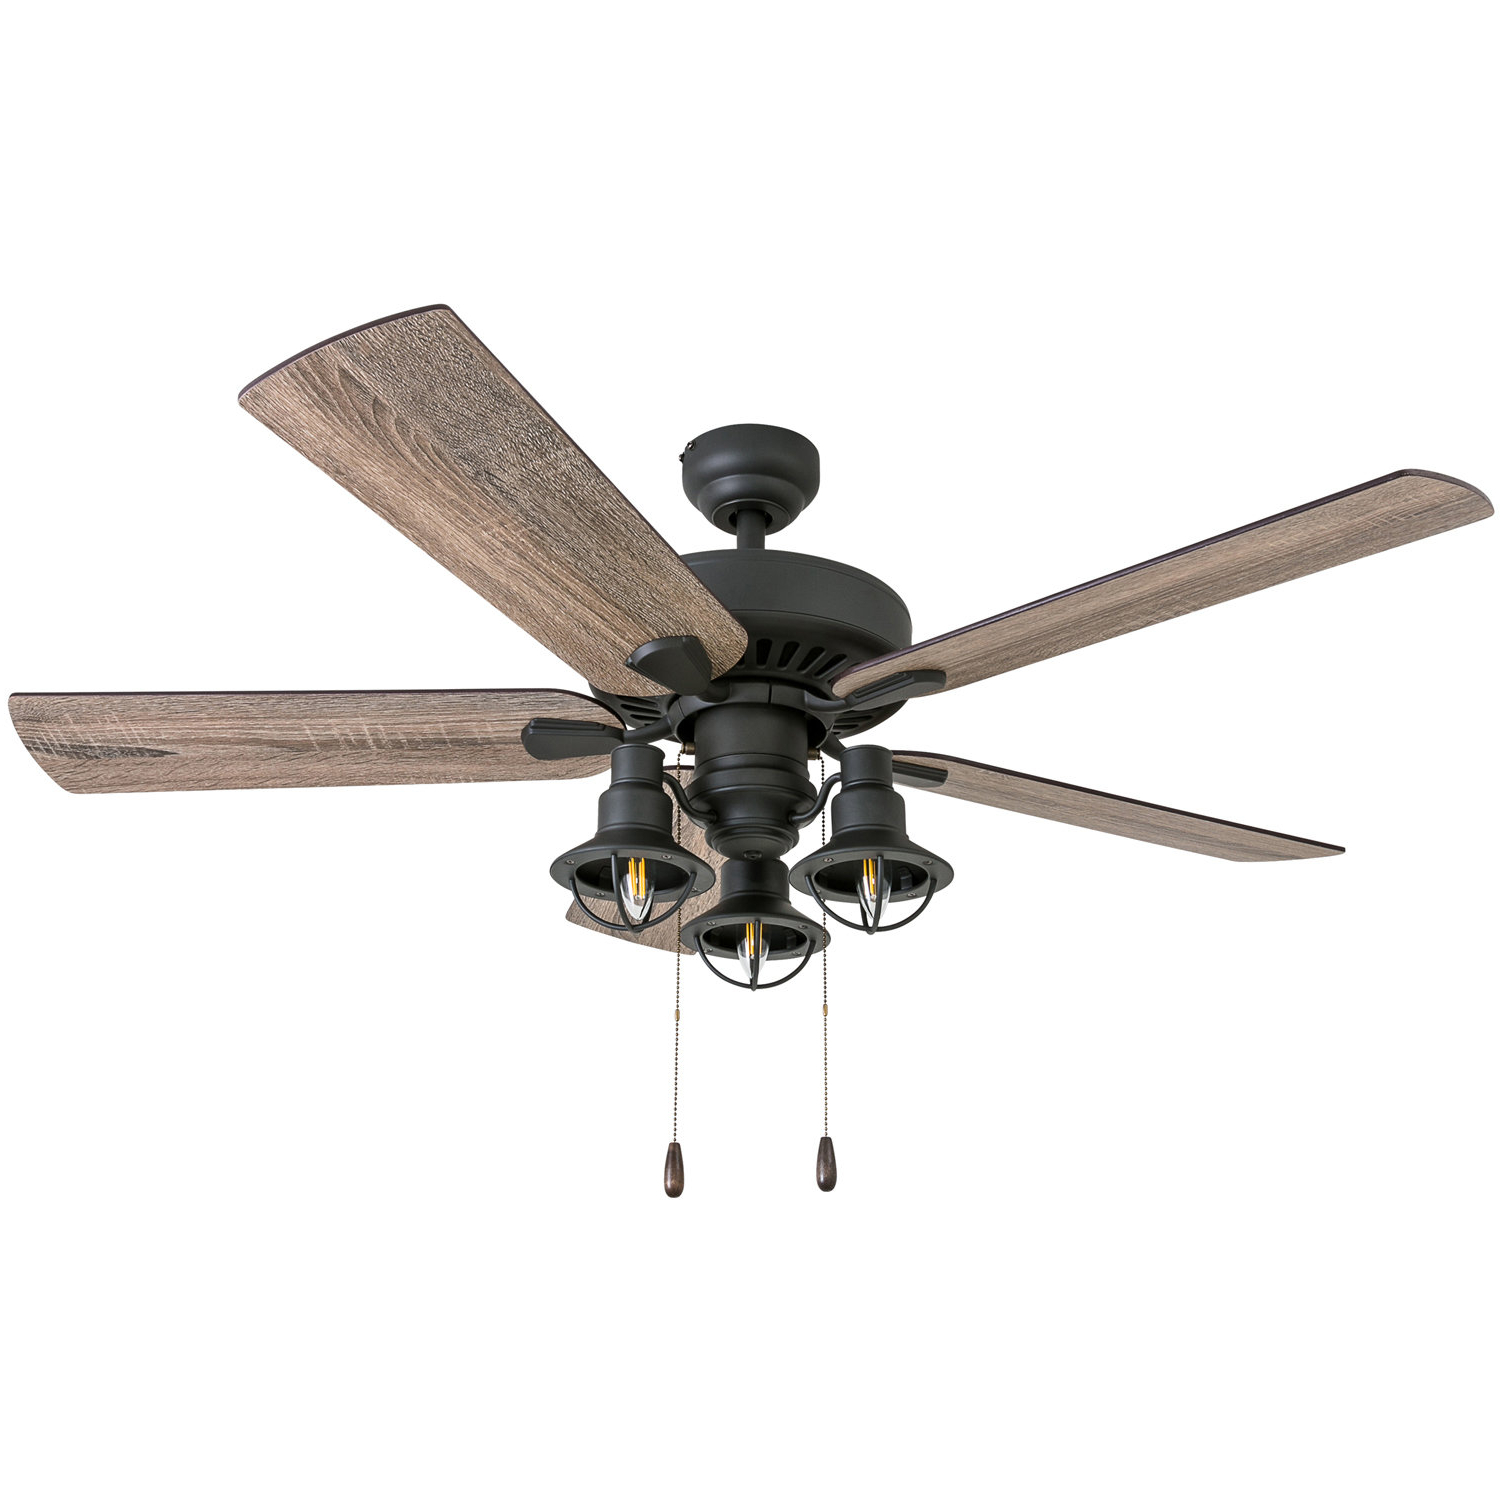 """Well Liked 52"""" Ravello 5 Blade Led Ceiling Fan, Light Kit Included Inside Crestfield 5 Blade Led Ceiling Fans (View 19 of 20)"""